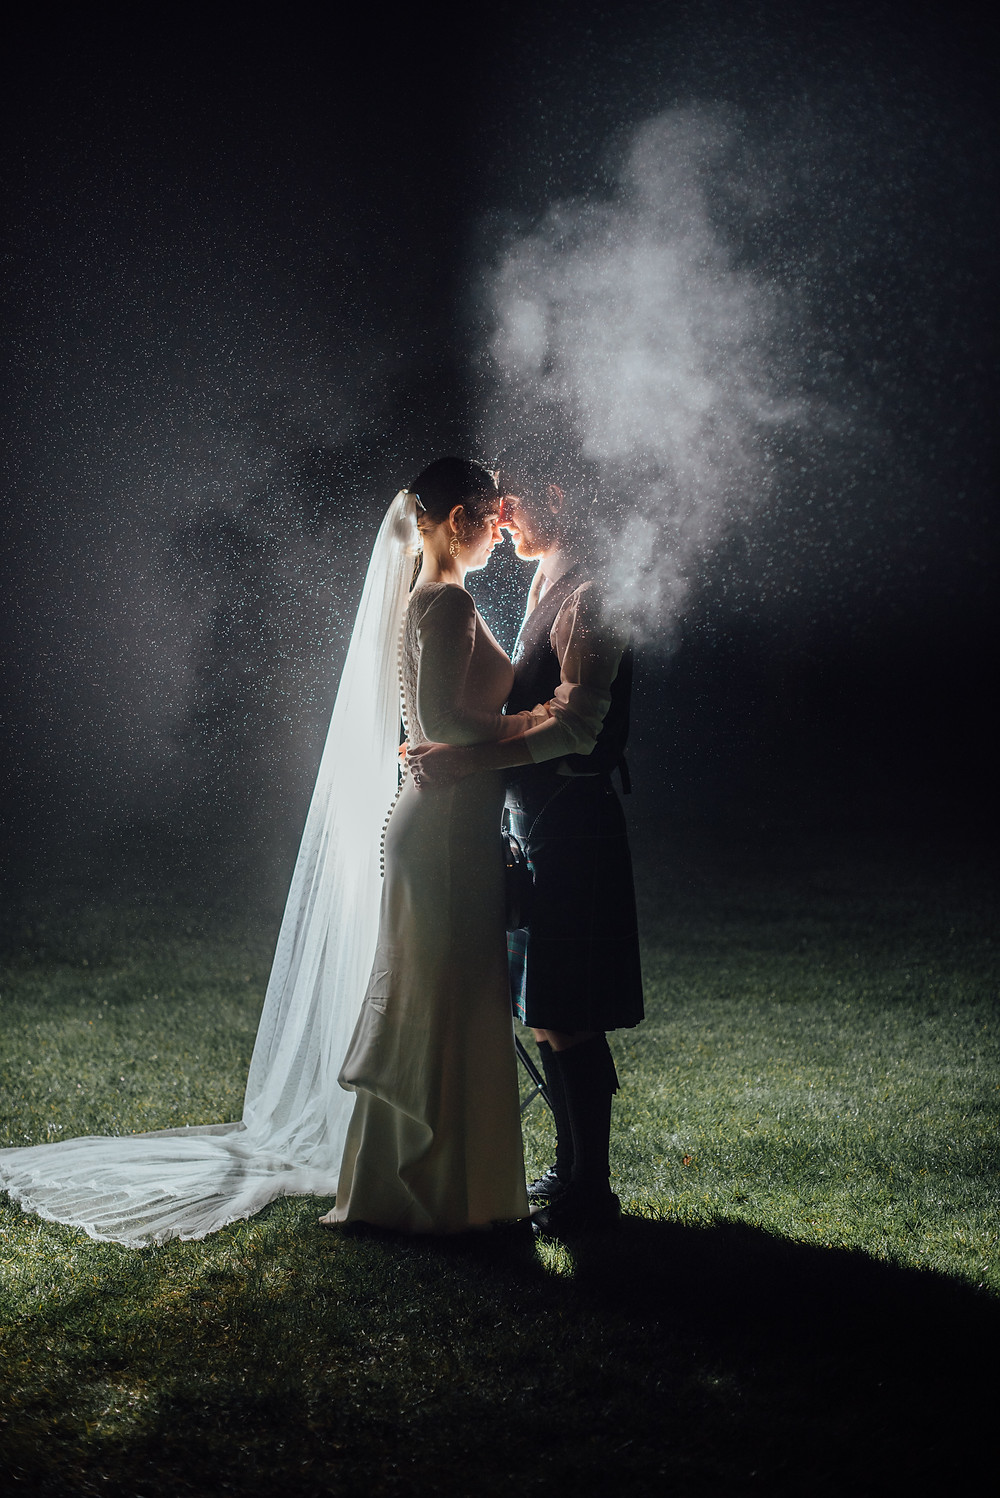 Bride and groom nighttime portrait at Kirknewton Stables Wedding